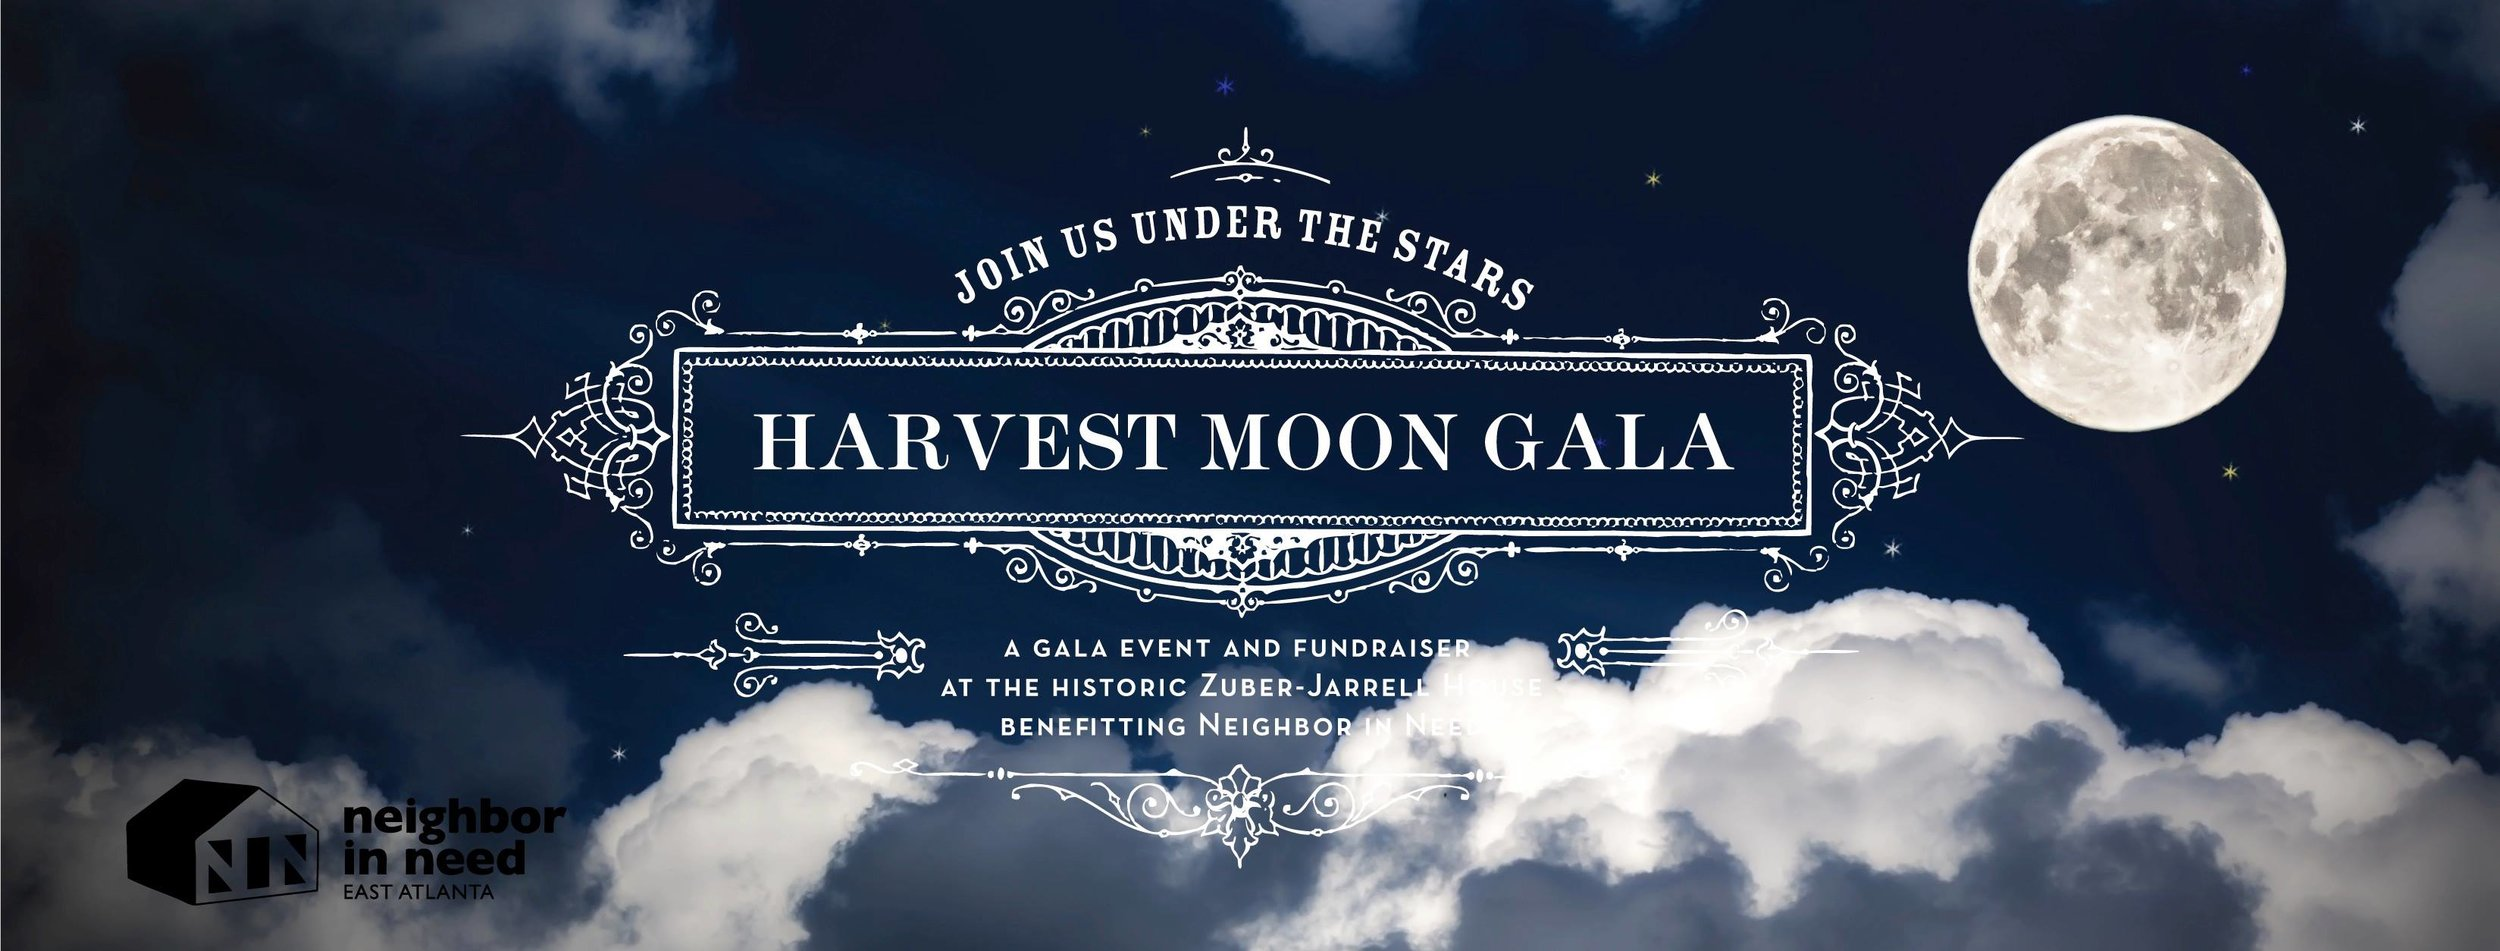 Under the Harvest Moon - Saturday, October 21, 2017A Gala to benefit Neighbor In Need